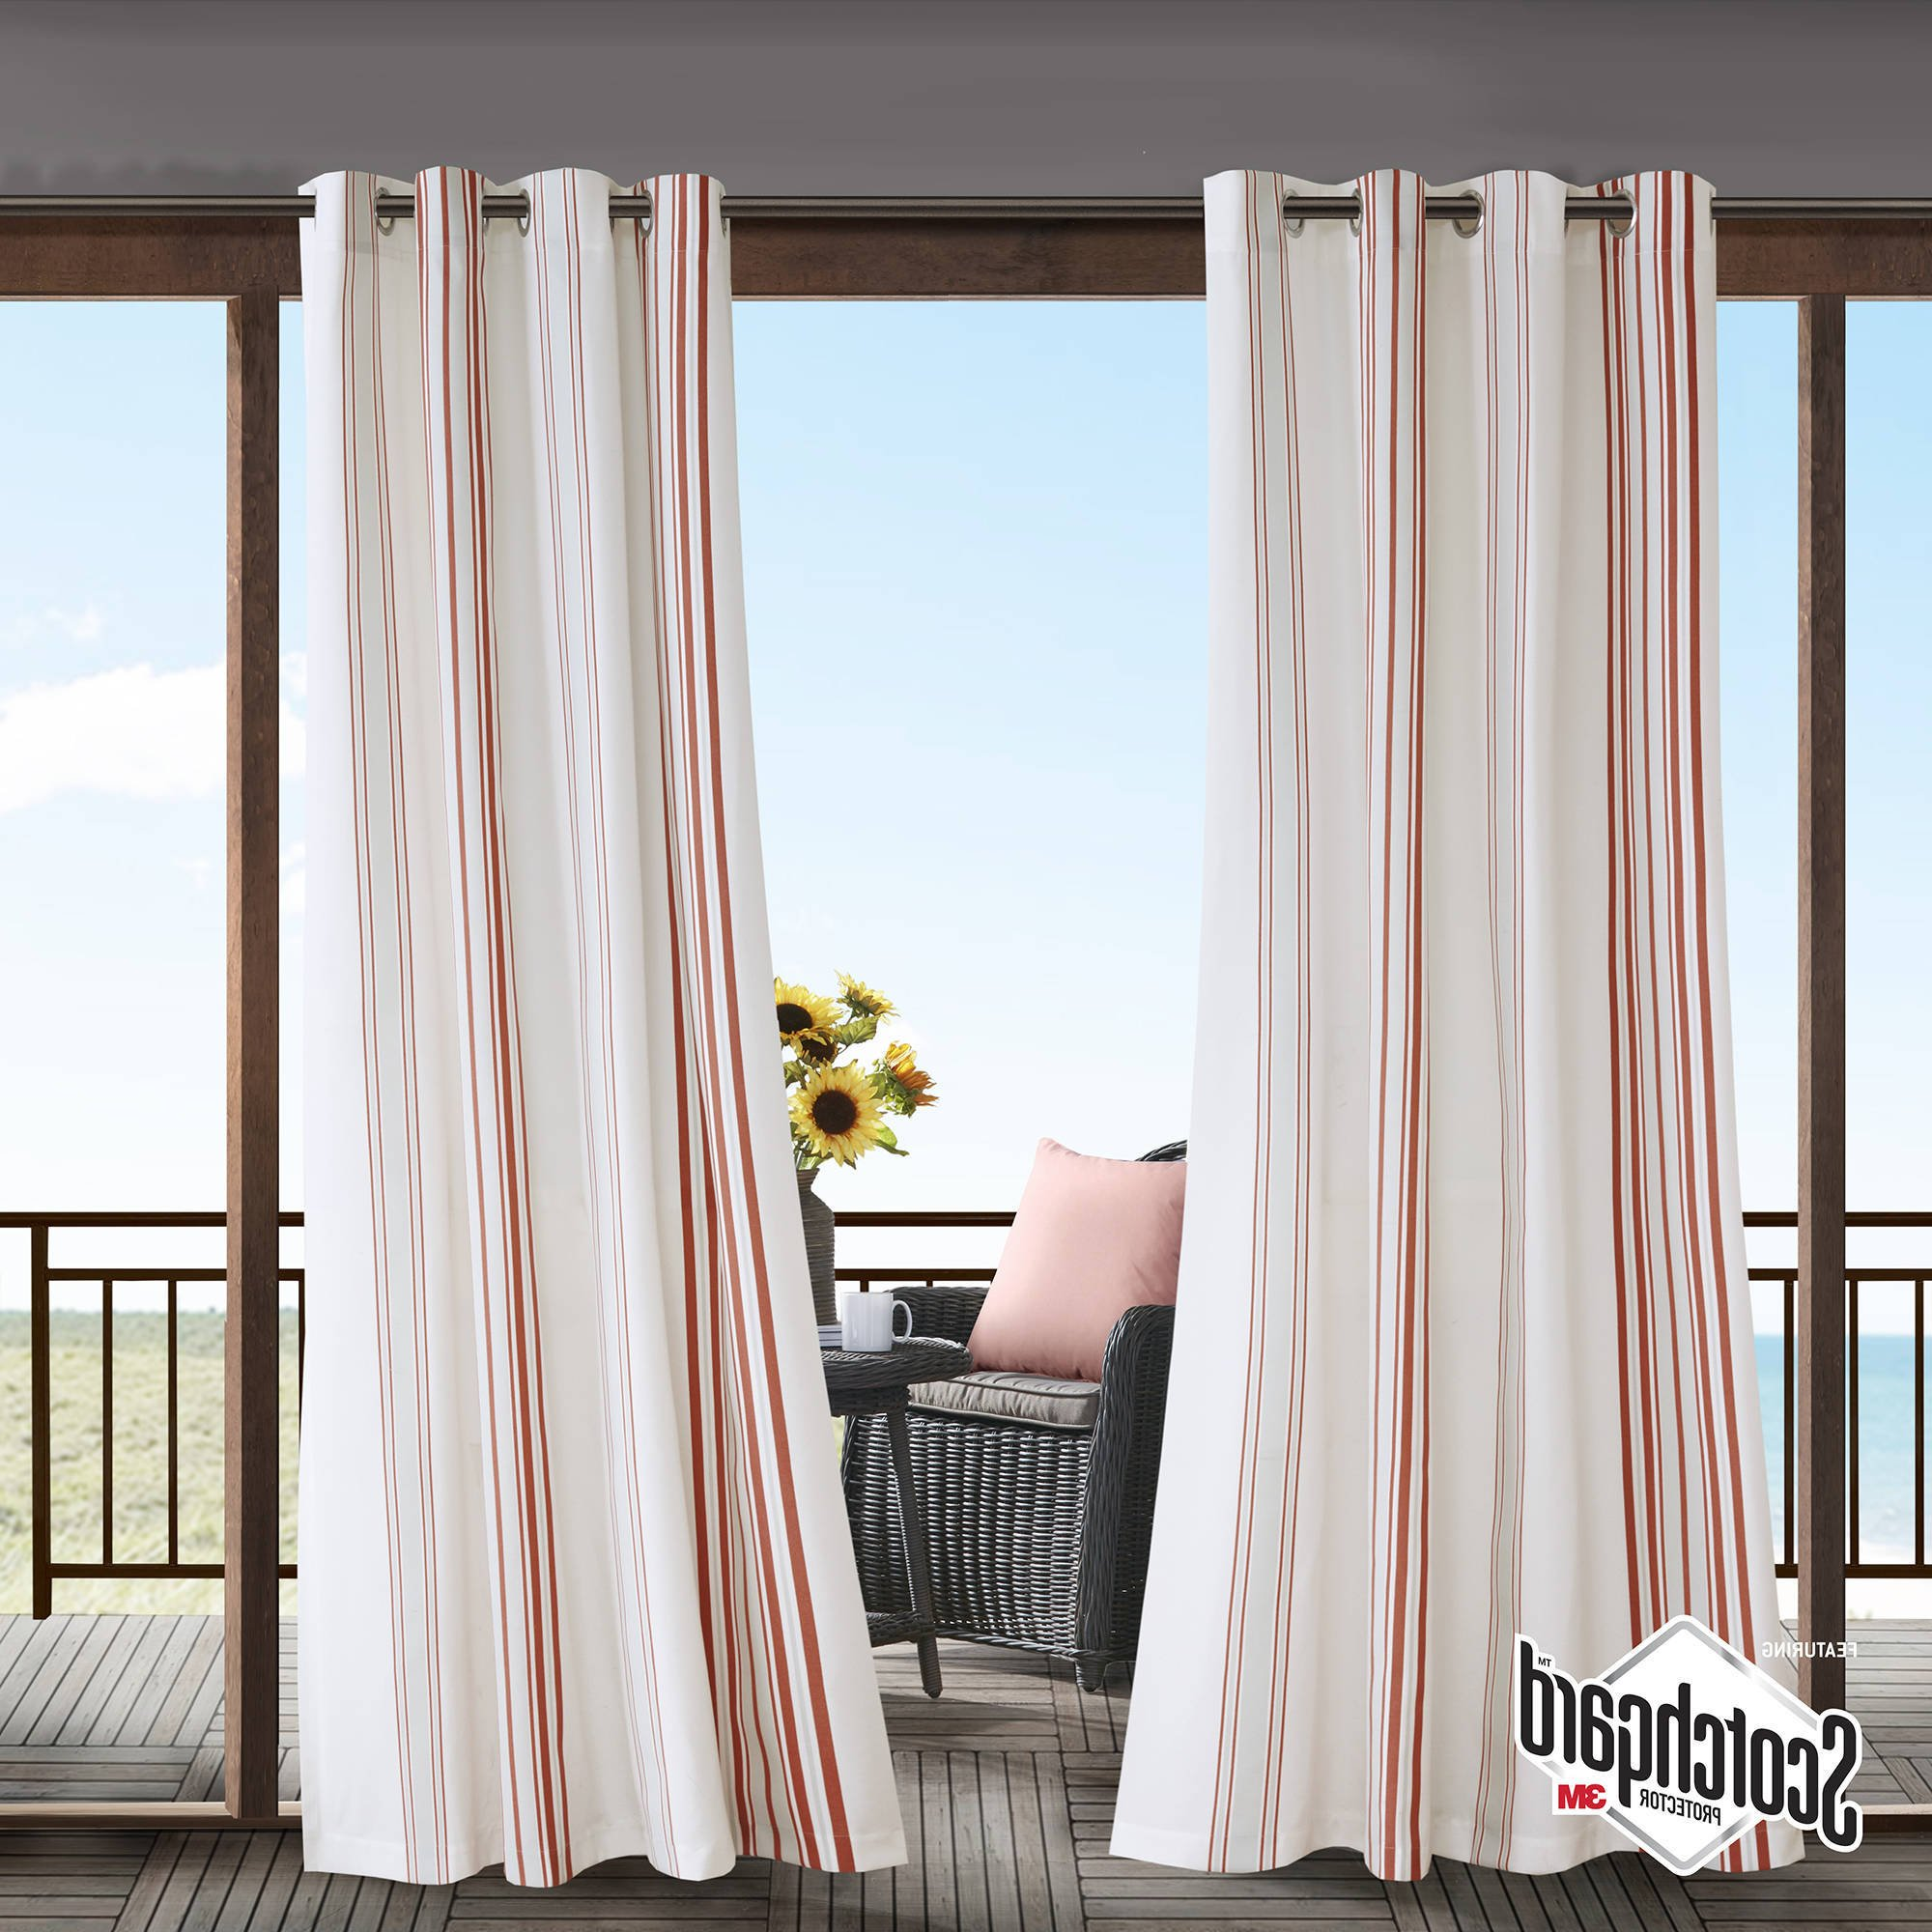 N&T 1 Piece Coral Cabana Stripes Gazebo Curtain Panel 95 Inch, White Coastal Print Outdoor Curtain Light Filtering For Patio Porch, Water Resistant Outdoor Drapes Sunroom Grommet, Polyester